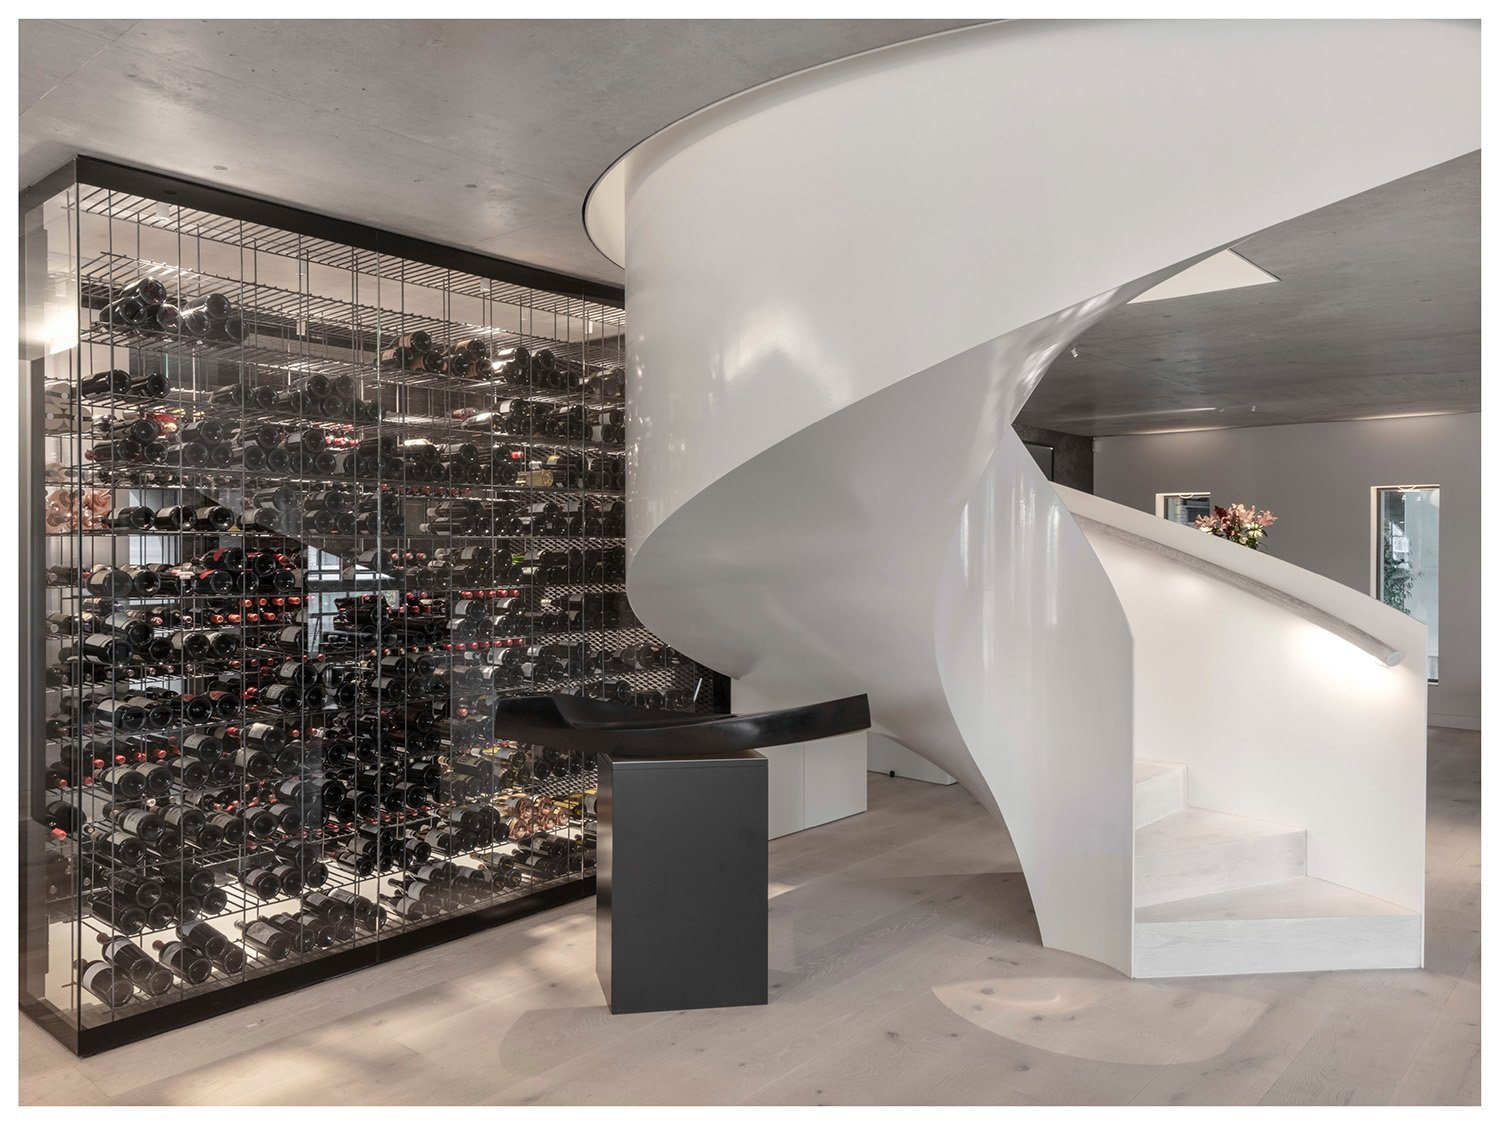 The white, monolithic-like spiral staircase vertically connects the three floors. Delphine Burtin}